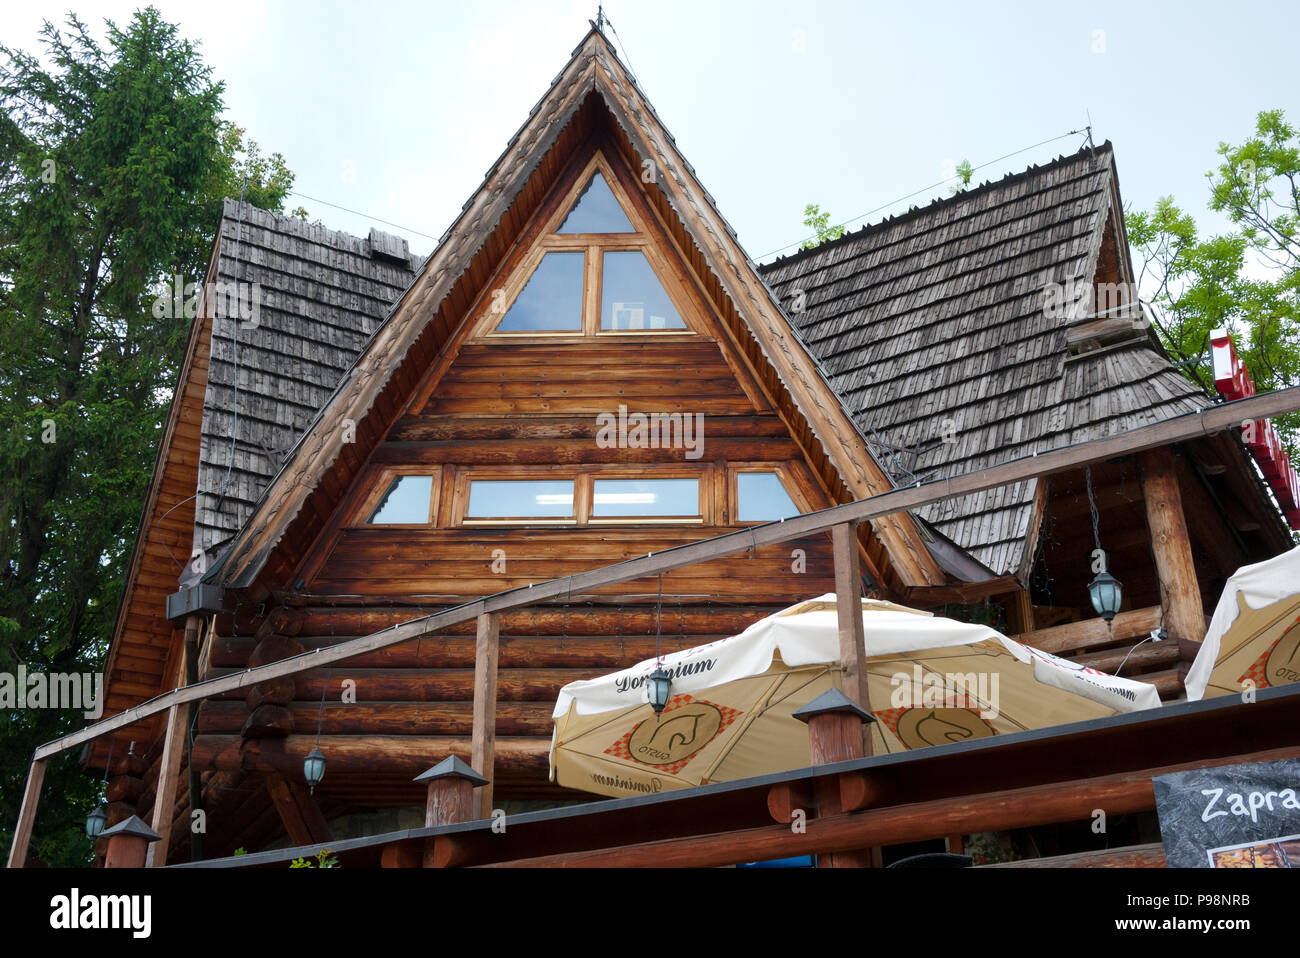 Typical acute sloping roof to combat heavy snowfall, Zakopane, Southern Poland, Europe. - Stock Image